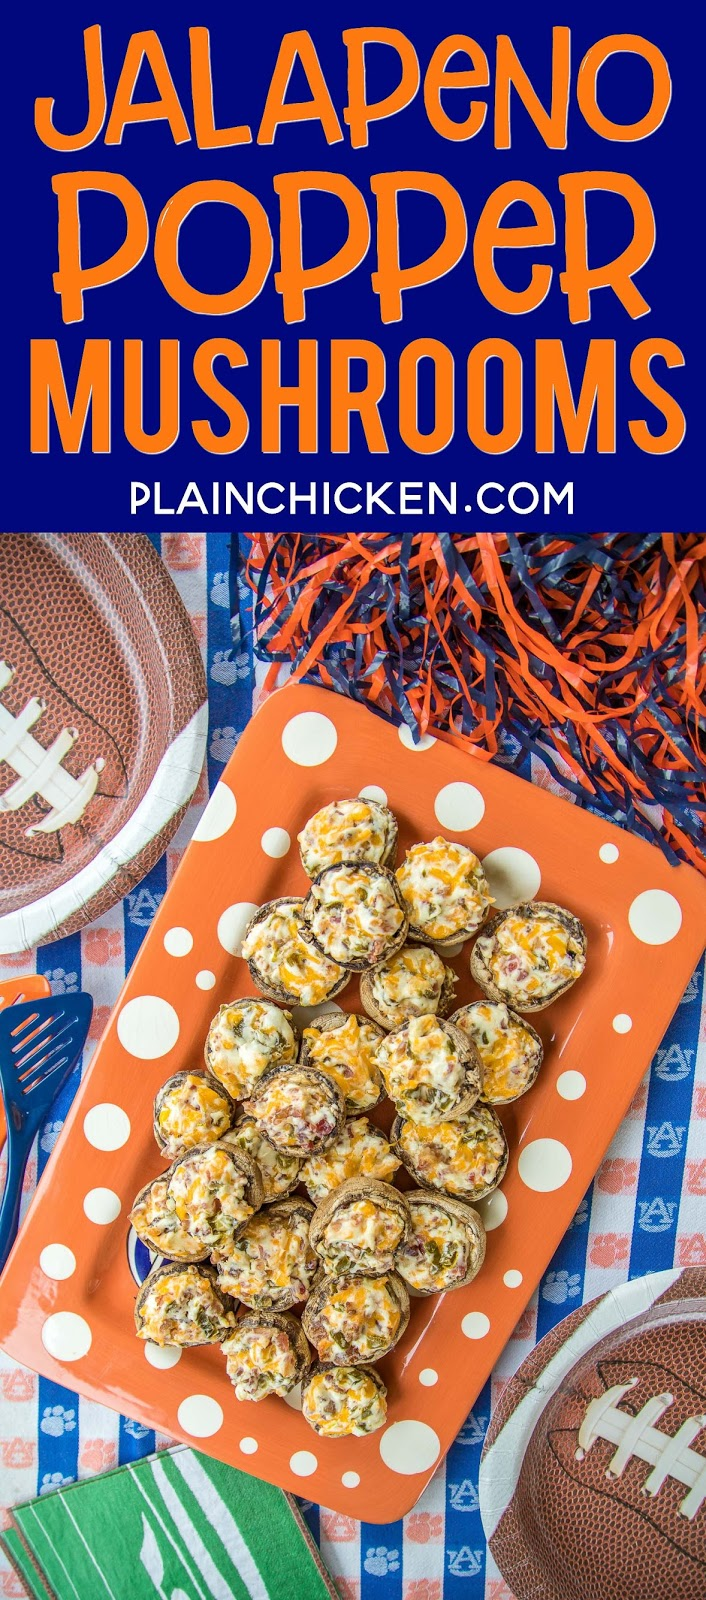 Jalapeno Popper Mushrooms - always the first thing to go at parties! Mushrooms stuffed with cream cheese, garlic, cheddar cheese, bacon and jalapeños. Seriously delicious! Can prep mushrooms ahead of time and refrigerate until ready to bake. Great for parties or a low-carb snack. #partyfood #mushrooms #jalapenopoppers #lowcarb